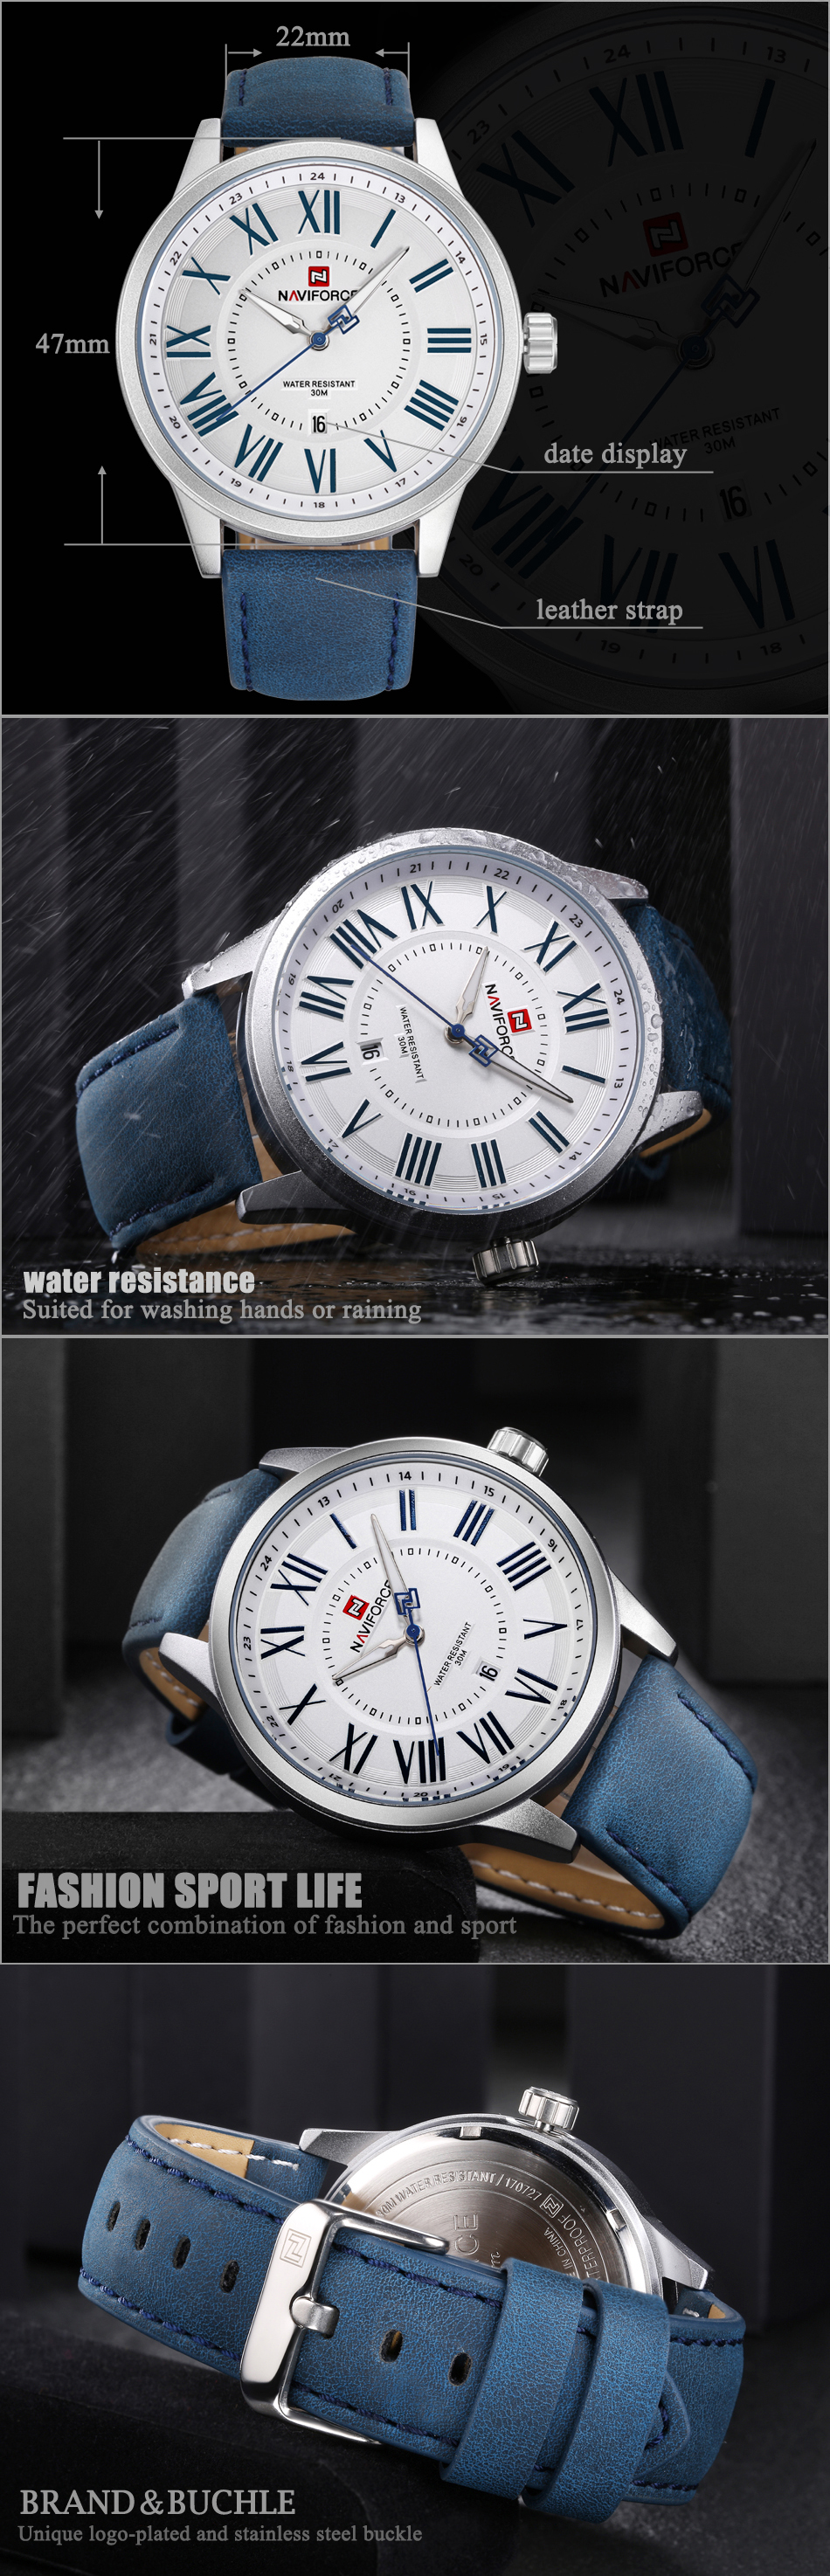 NAVIFORCE NF9126 Date Display Casual Style Men Wrist Watch